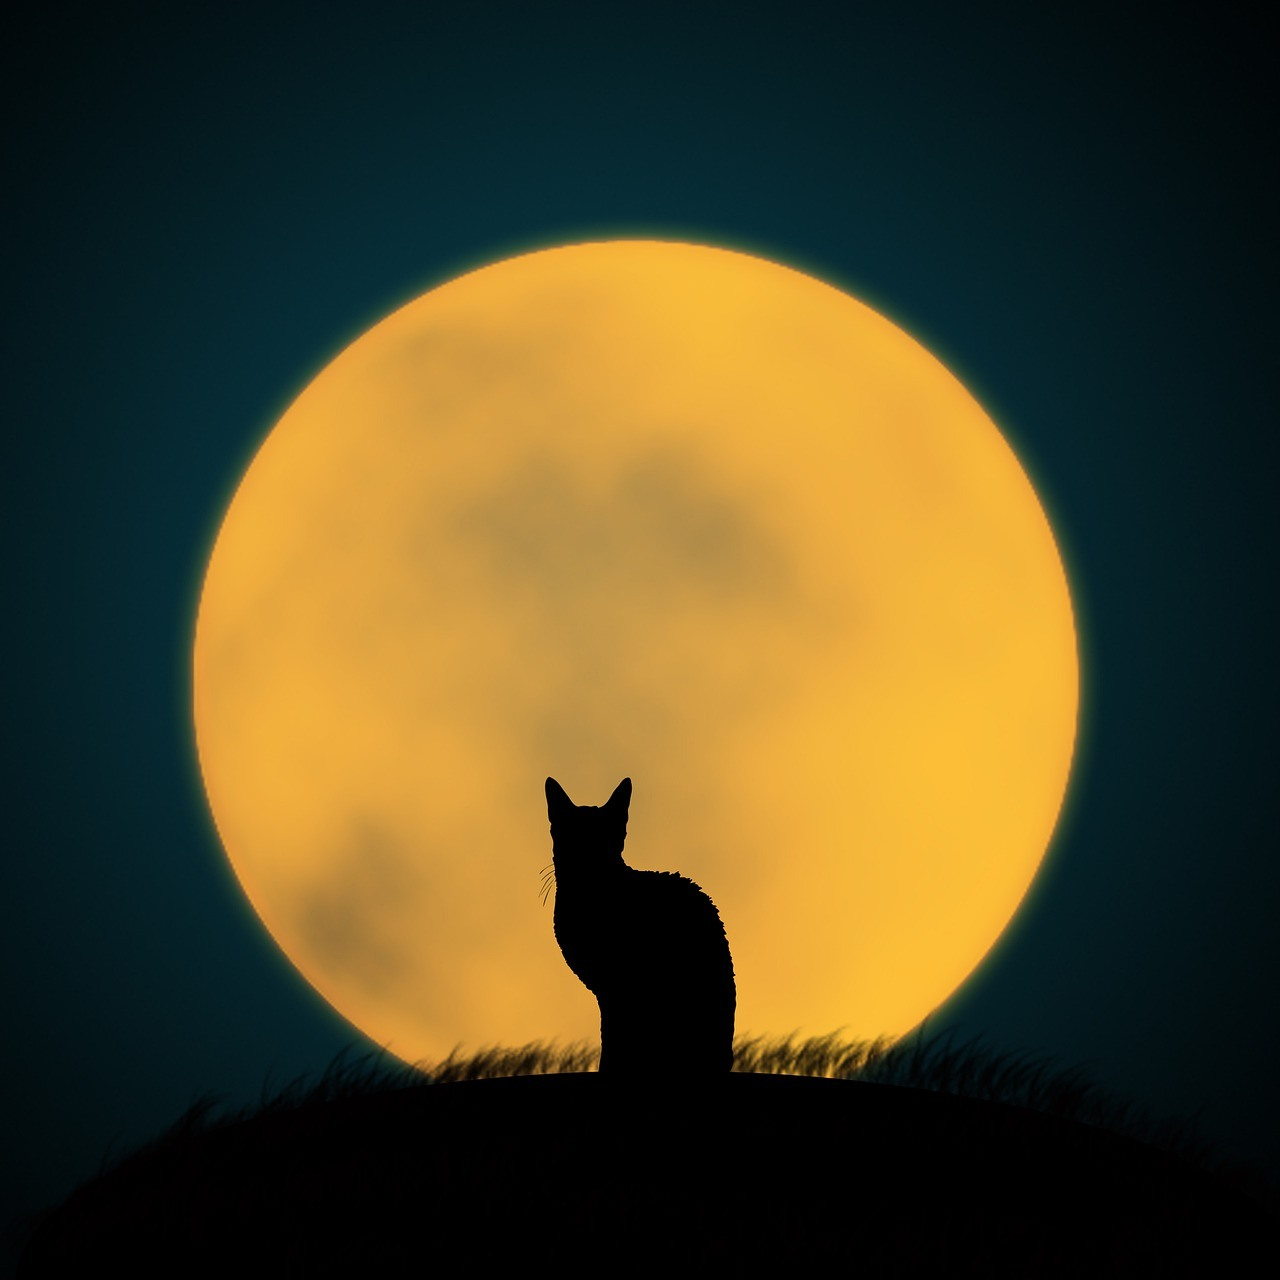 Halloween Cat with a Full Moon